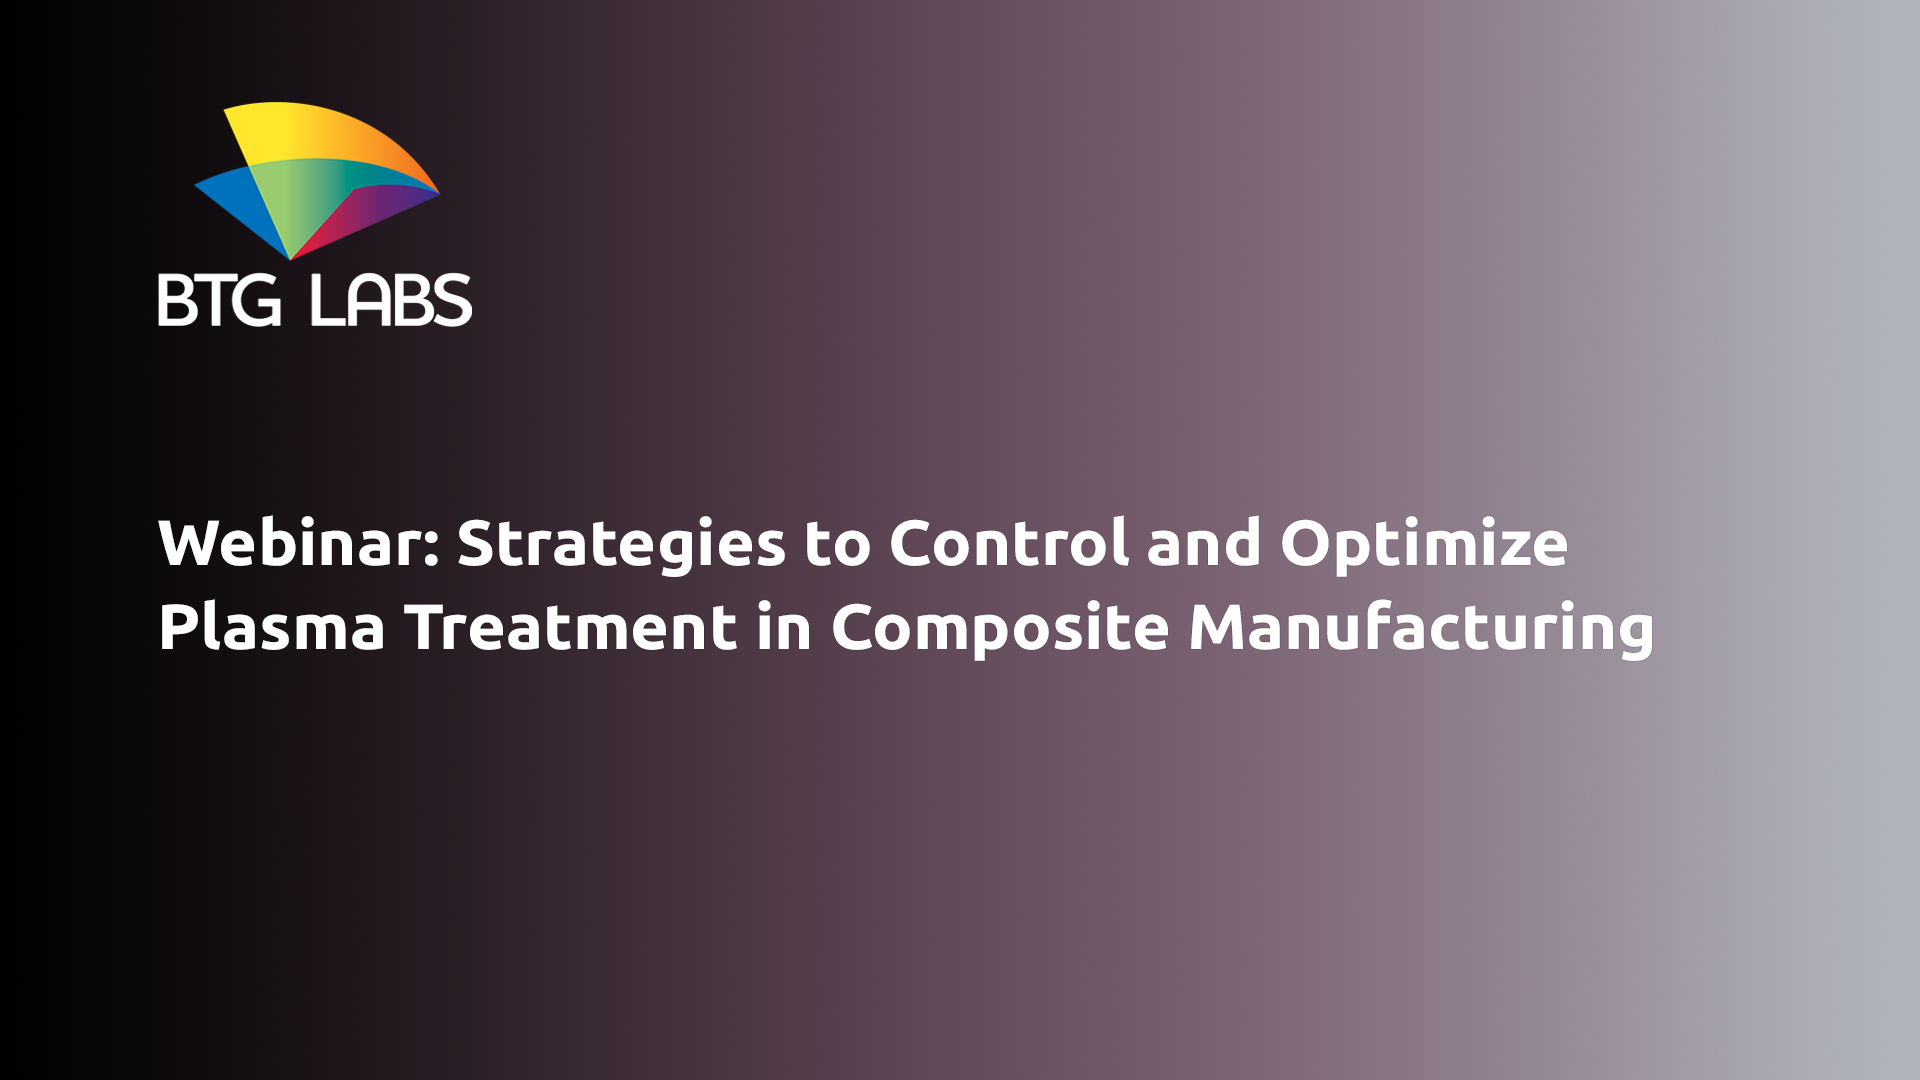 Strategies to Control and Optimize Plasma Treatment in Composite Manufacturing (1)